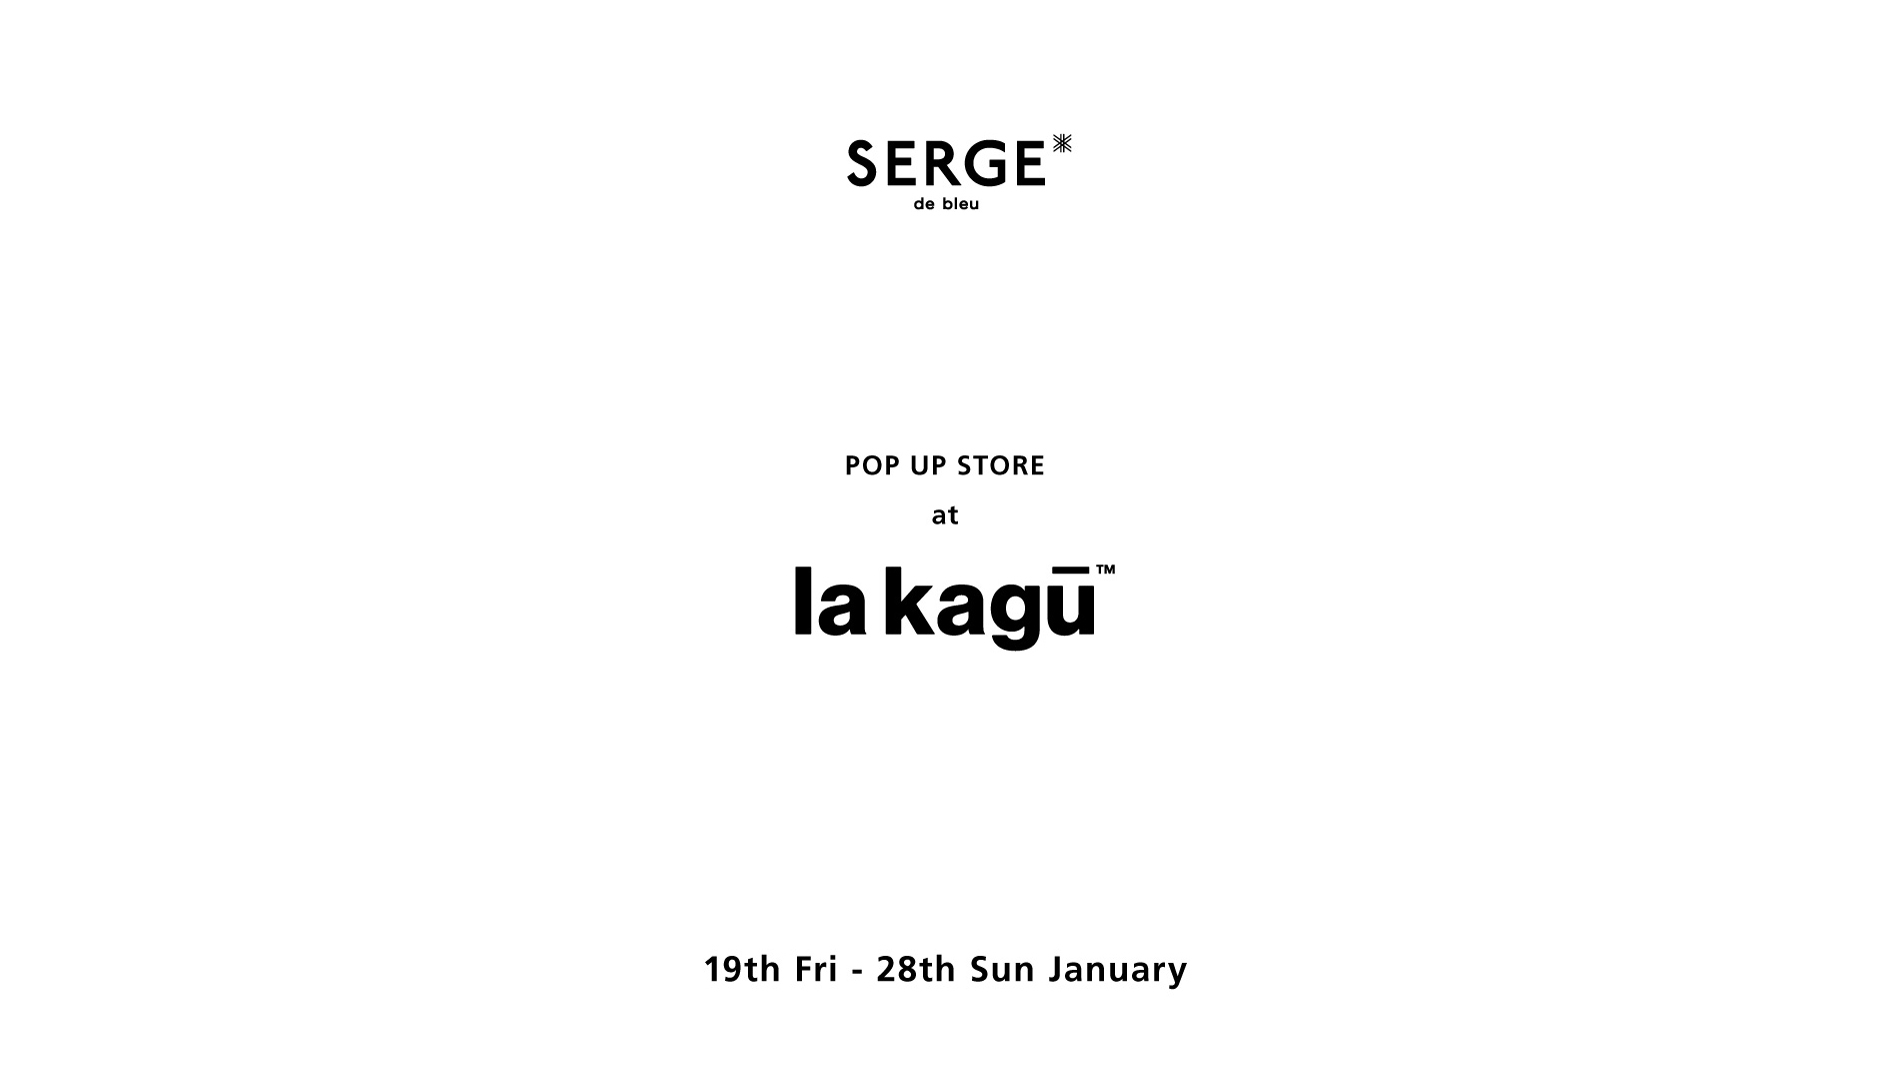 POP UP SHOP at la kagu